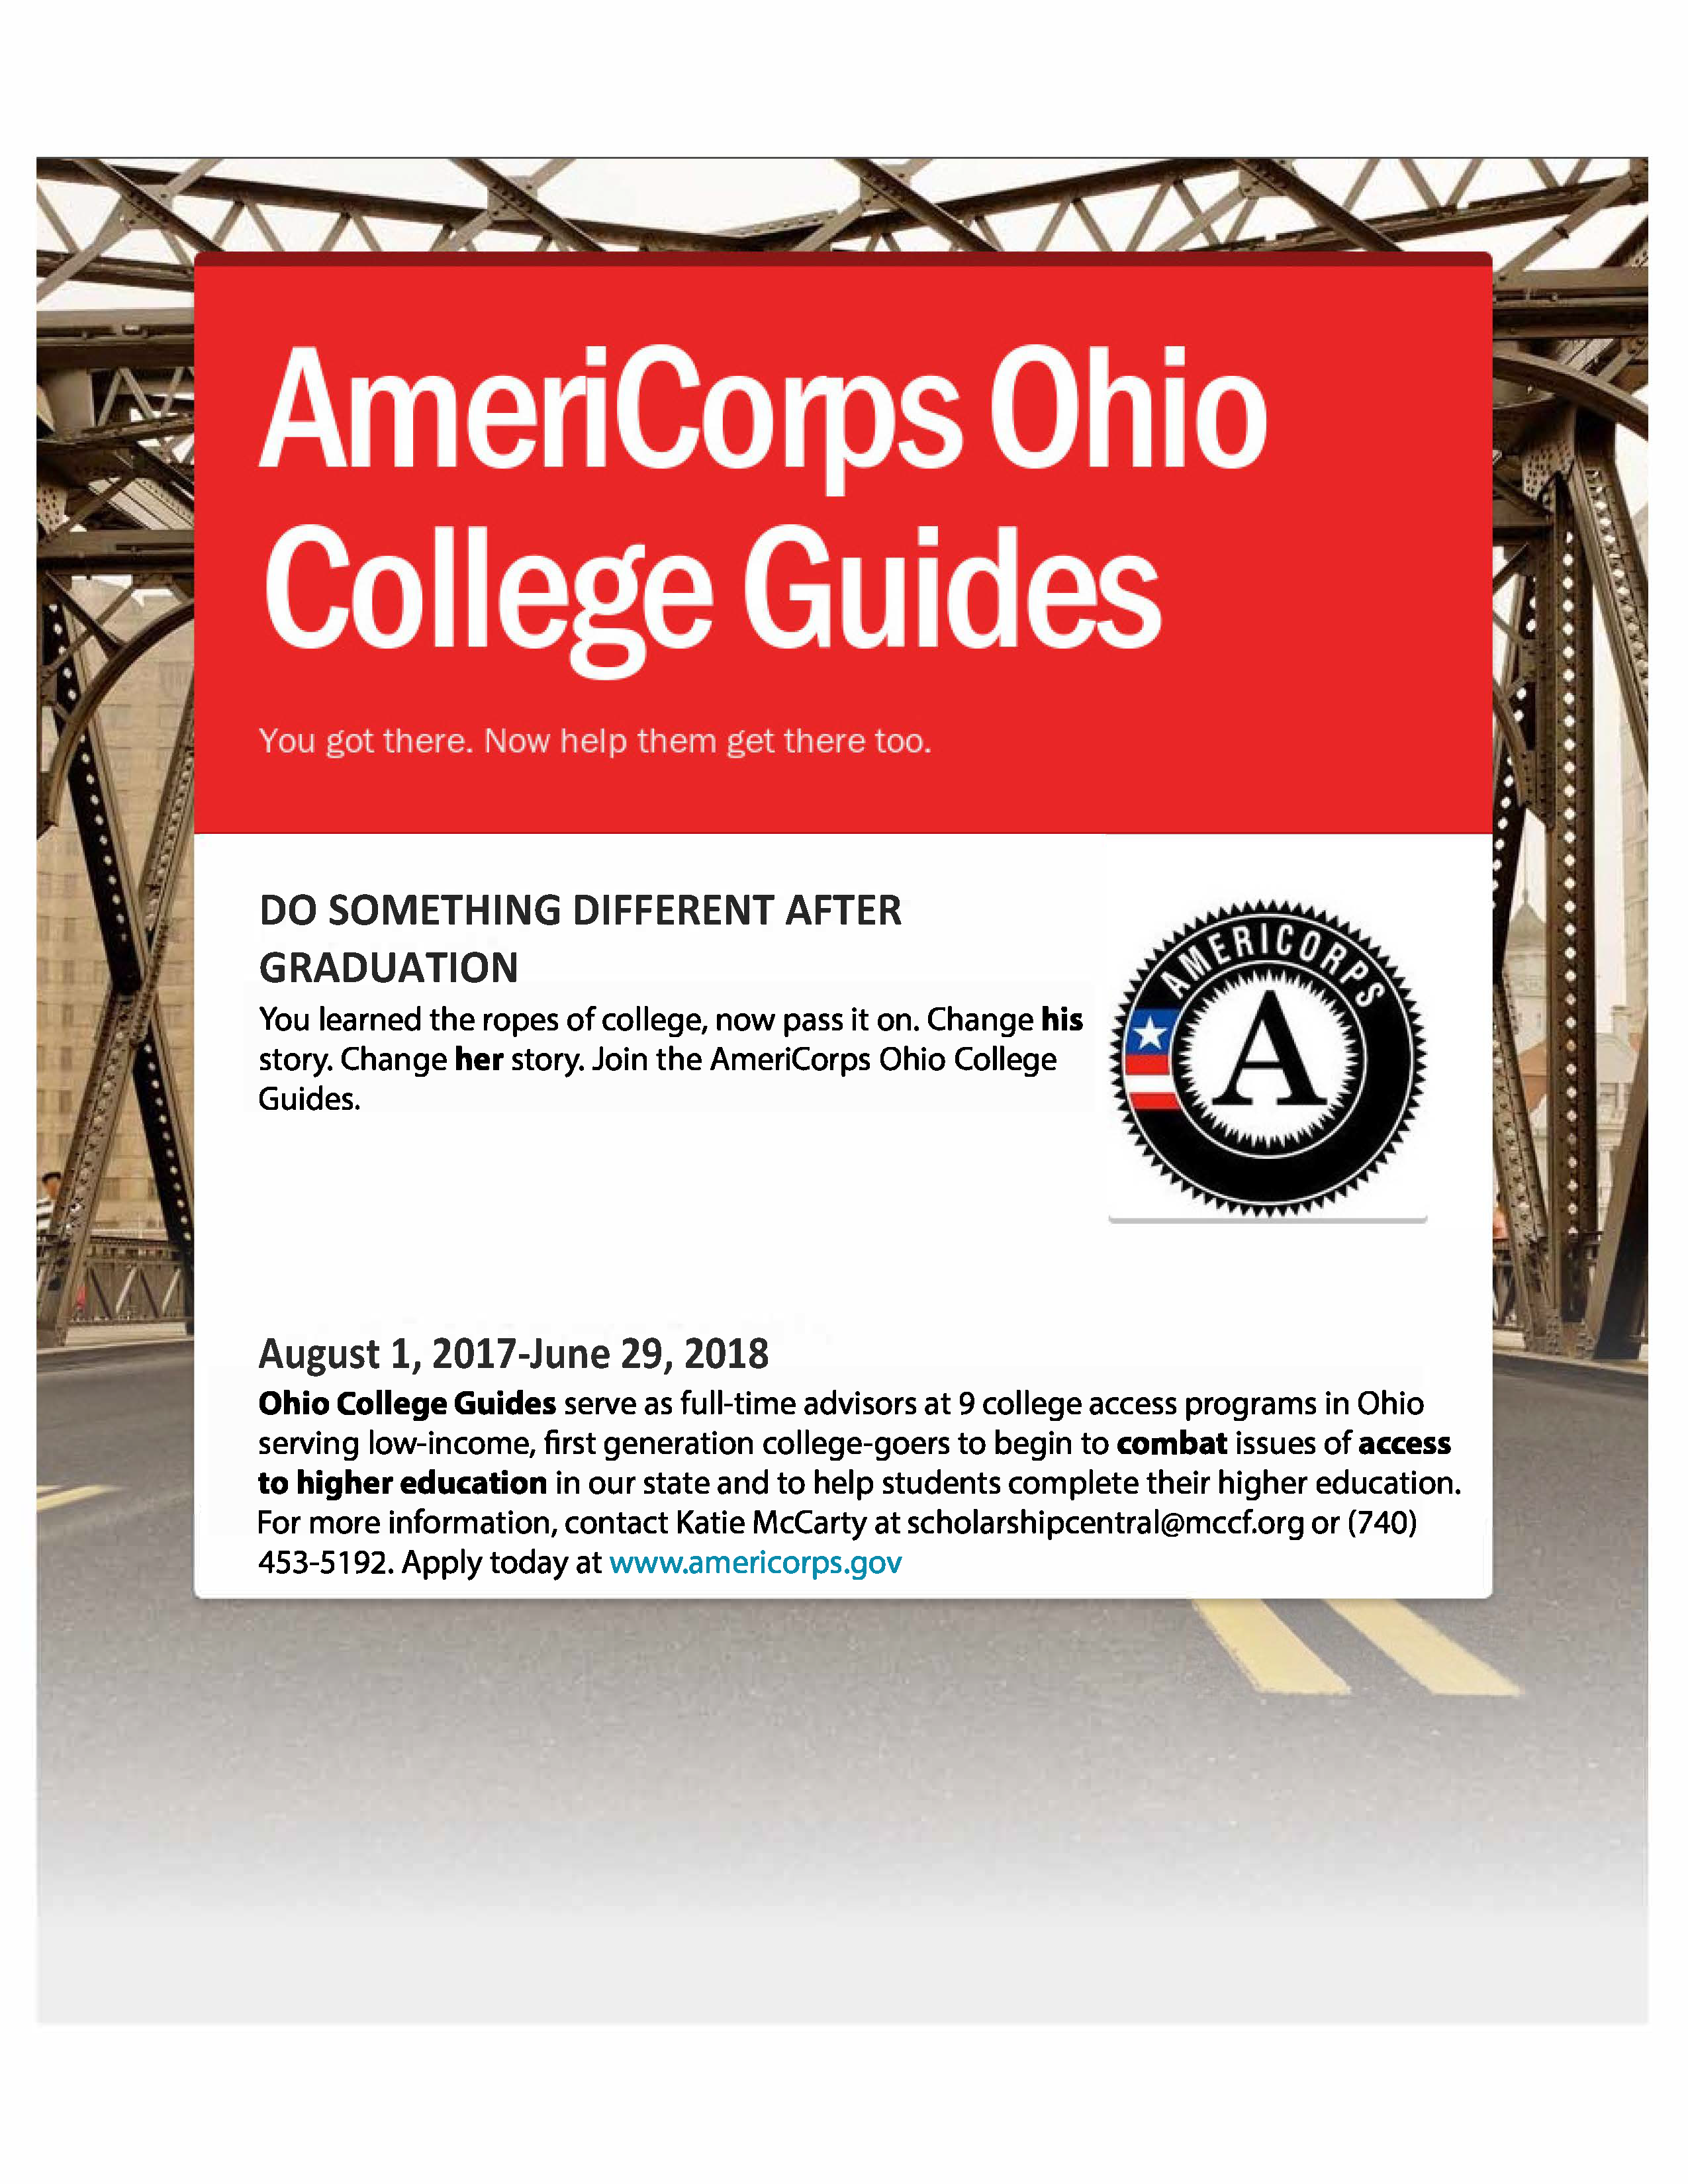 Scholarship Central Accepting Applications for AmeriCorps Positions